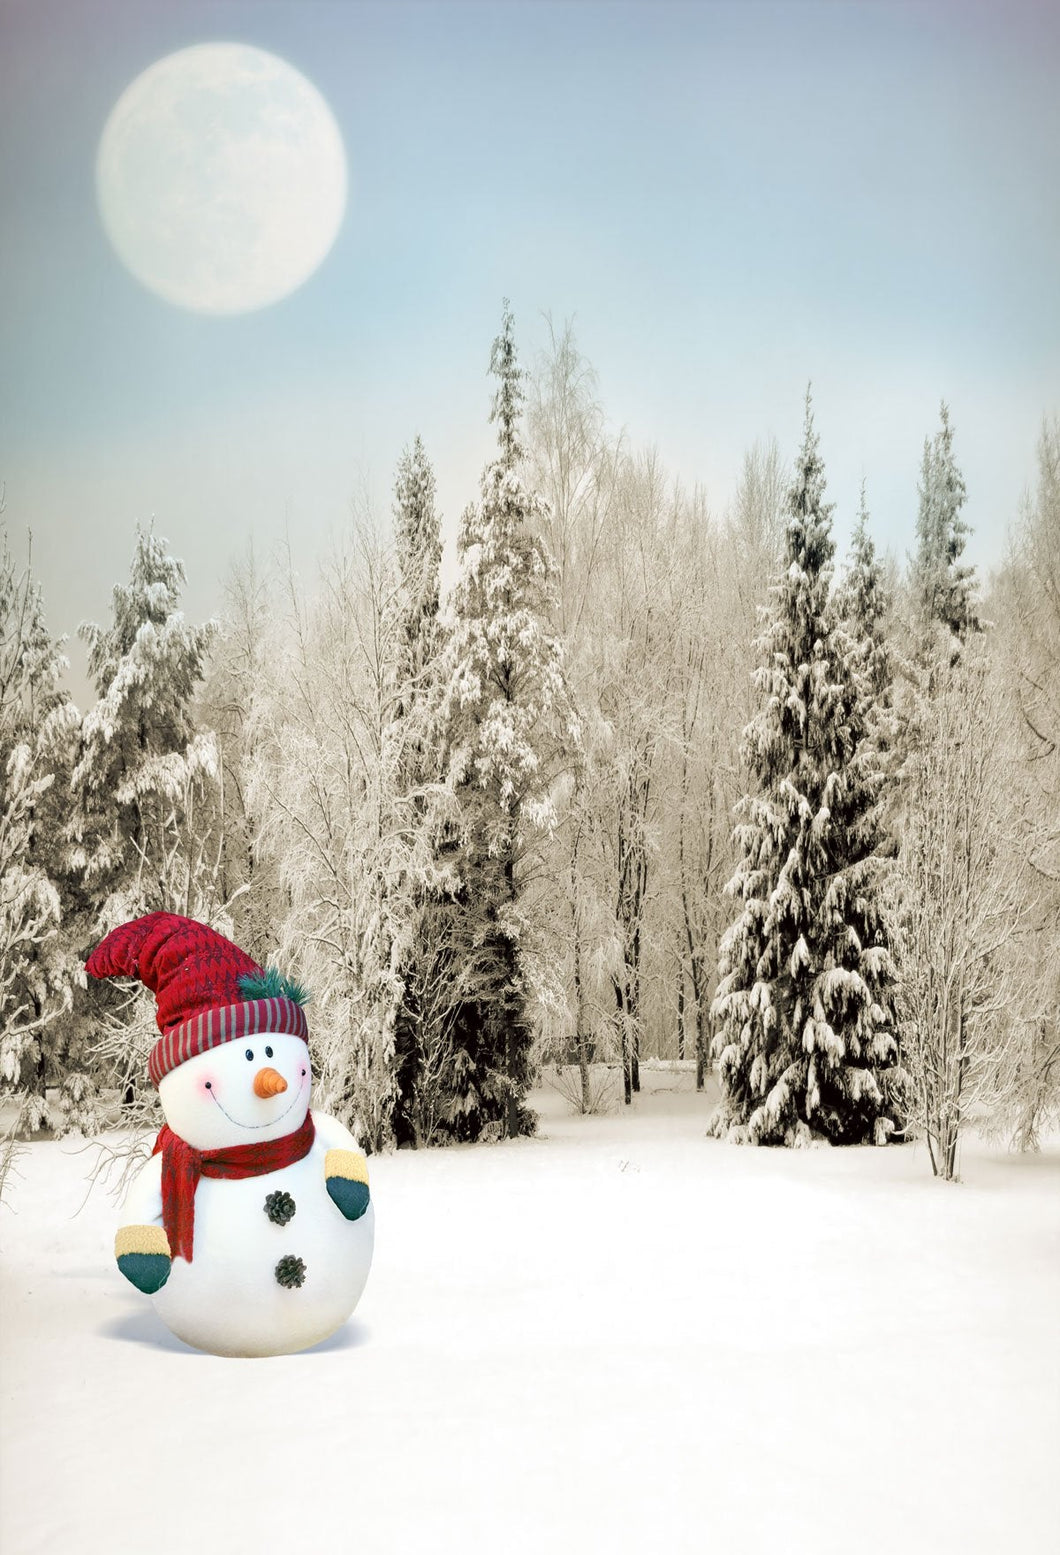 Katebackdrop:Kate Snowman Moon Frozen Trees Winter Backdrop for Photography